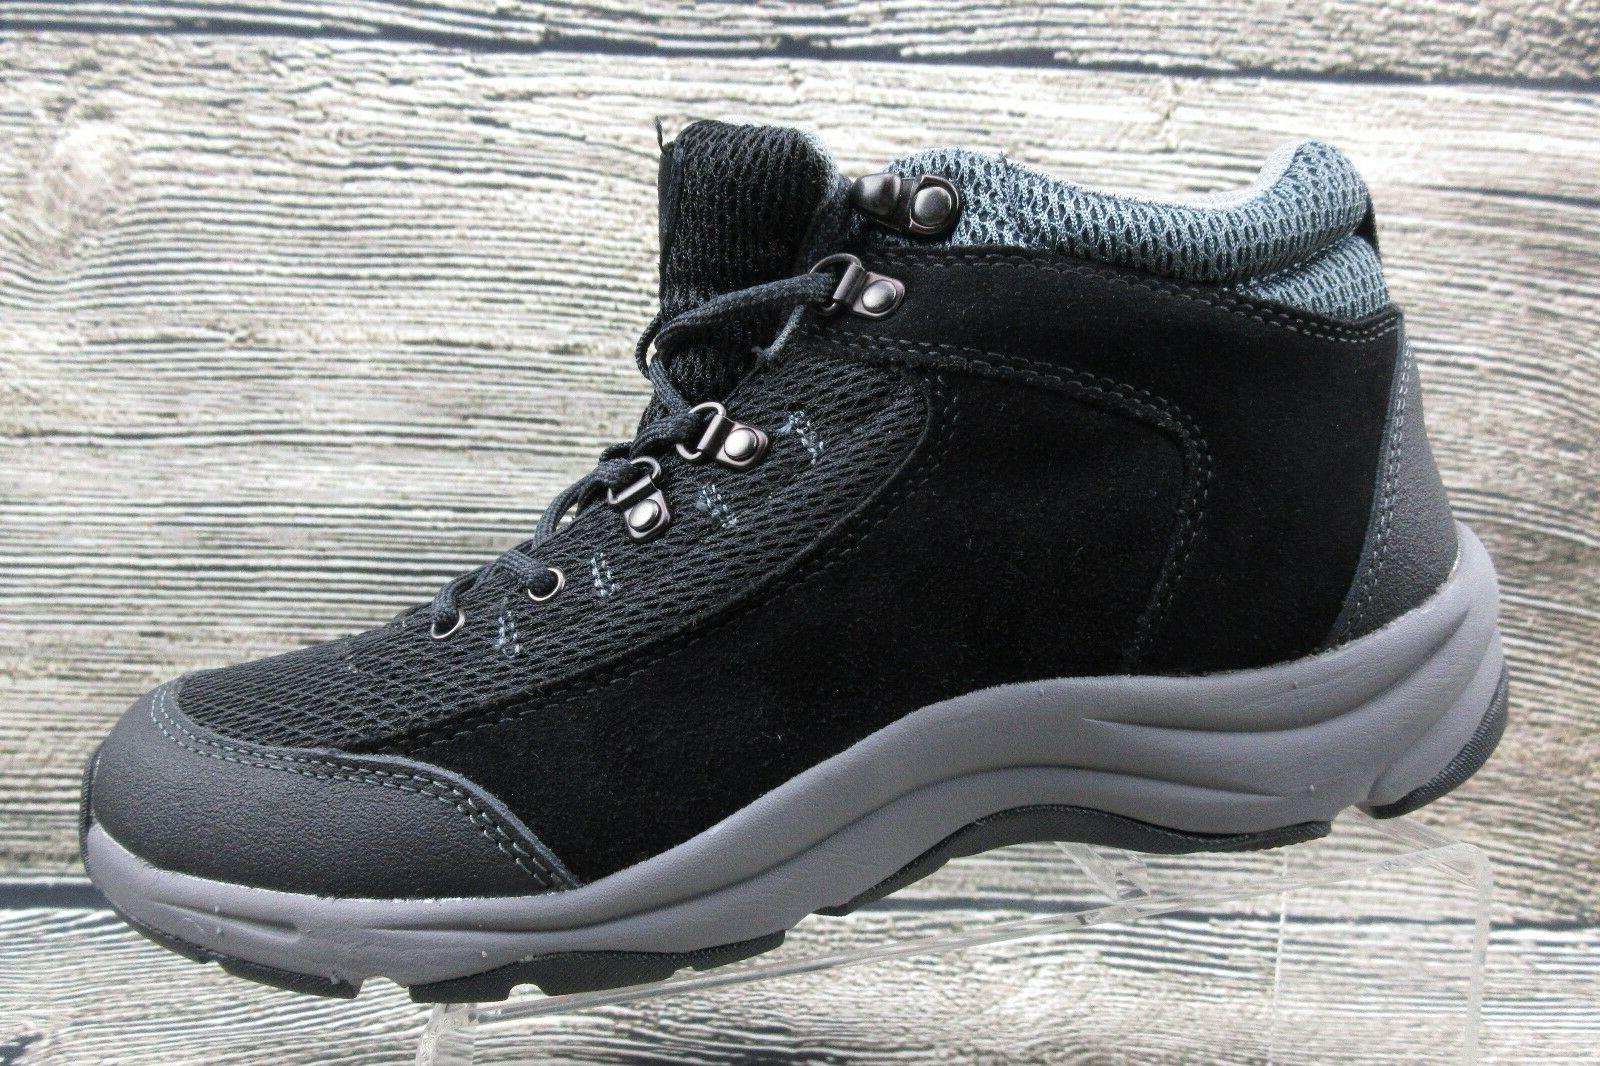 Vionic Womens Boots Black Hiking Trail